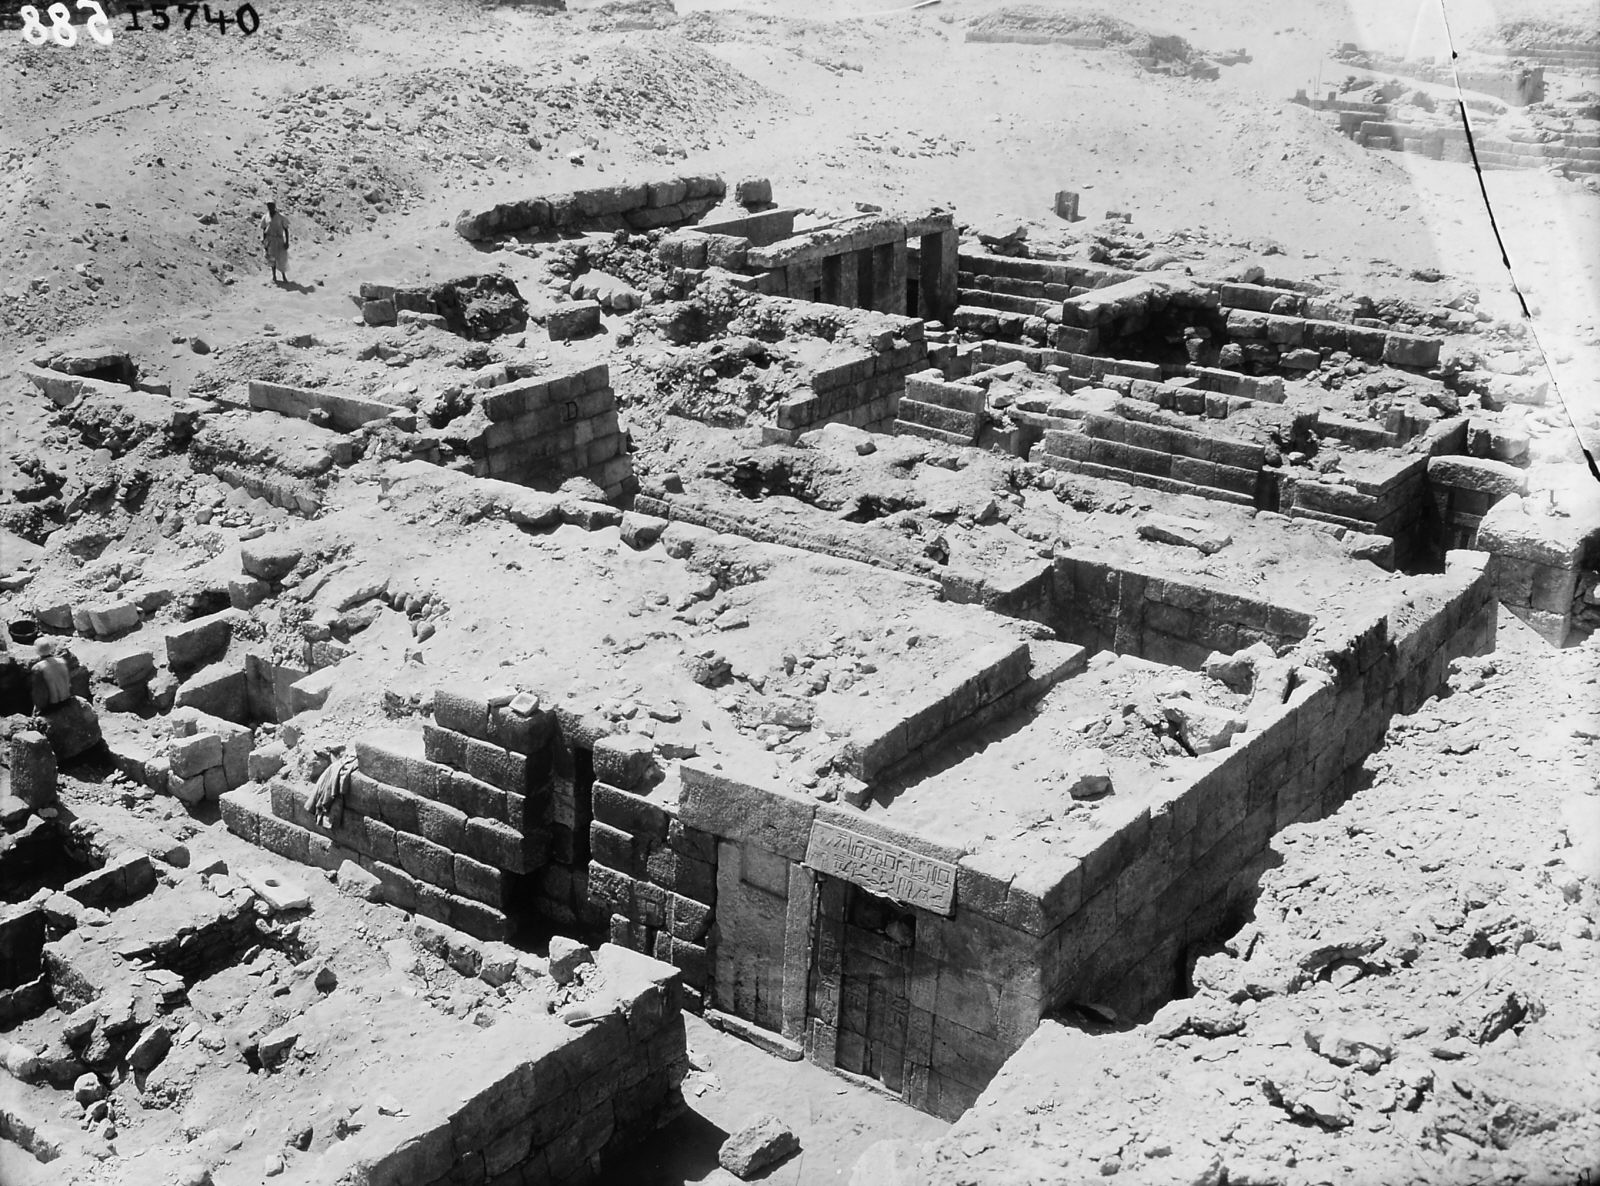 D 201, with false doors on W wall of corridor chapel (foreground), D 202, D 203, and D 204 (sequentially to W), D 208, with pillared portico (partially excavated, background center), looking SW. Photo ID KHM_AEOS_I_5740, photo and description courtesy of the Giza Archives maintained by Harvard University and the Museum of Fine Arts Boston, online at Digital Giza.